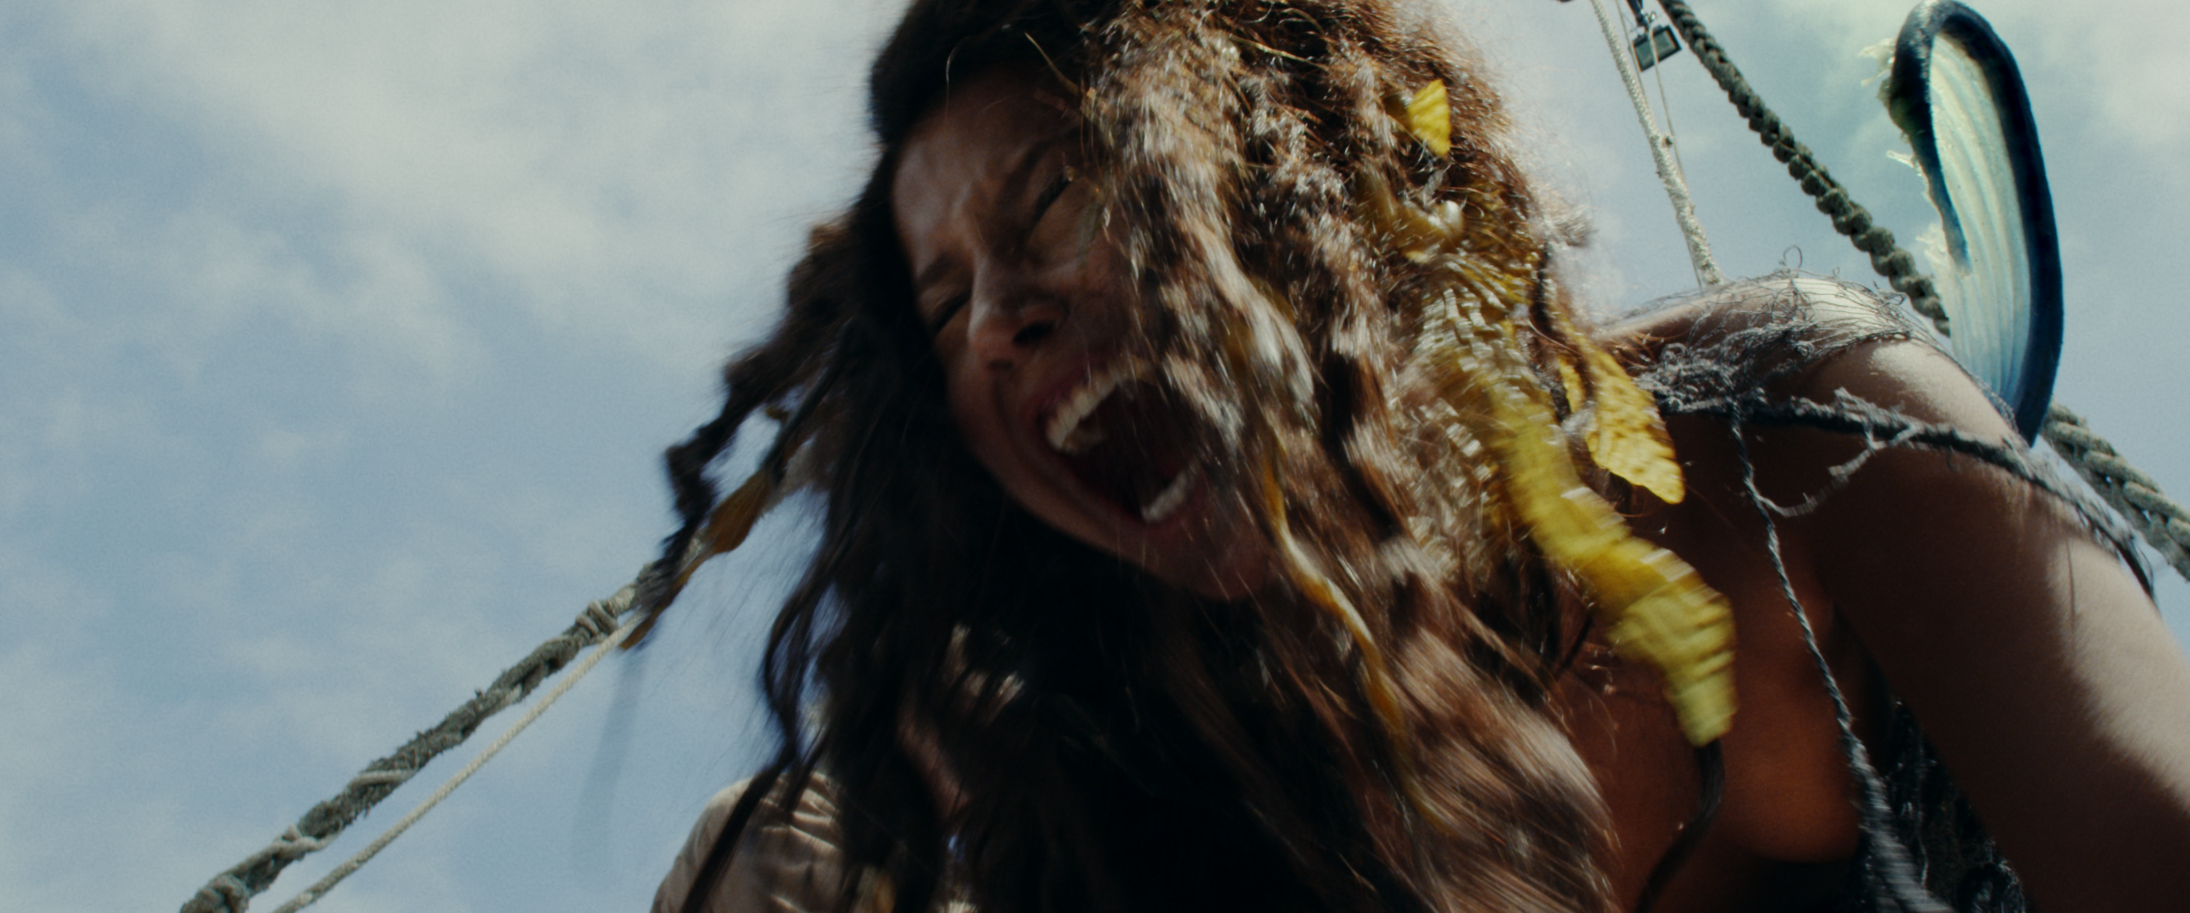 'Mermaid Down' effects had to be more creative, inventive, and practical